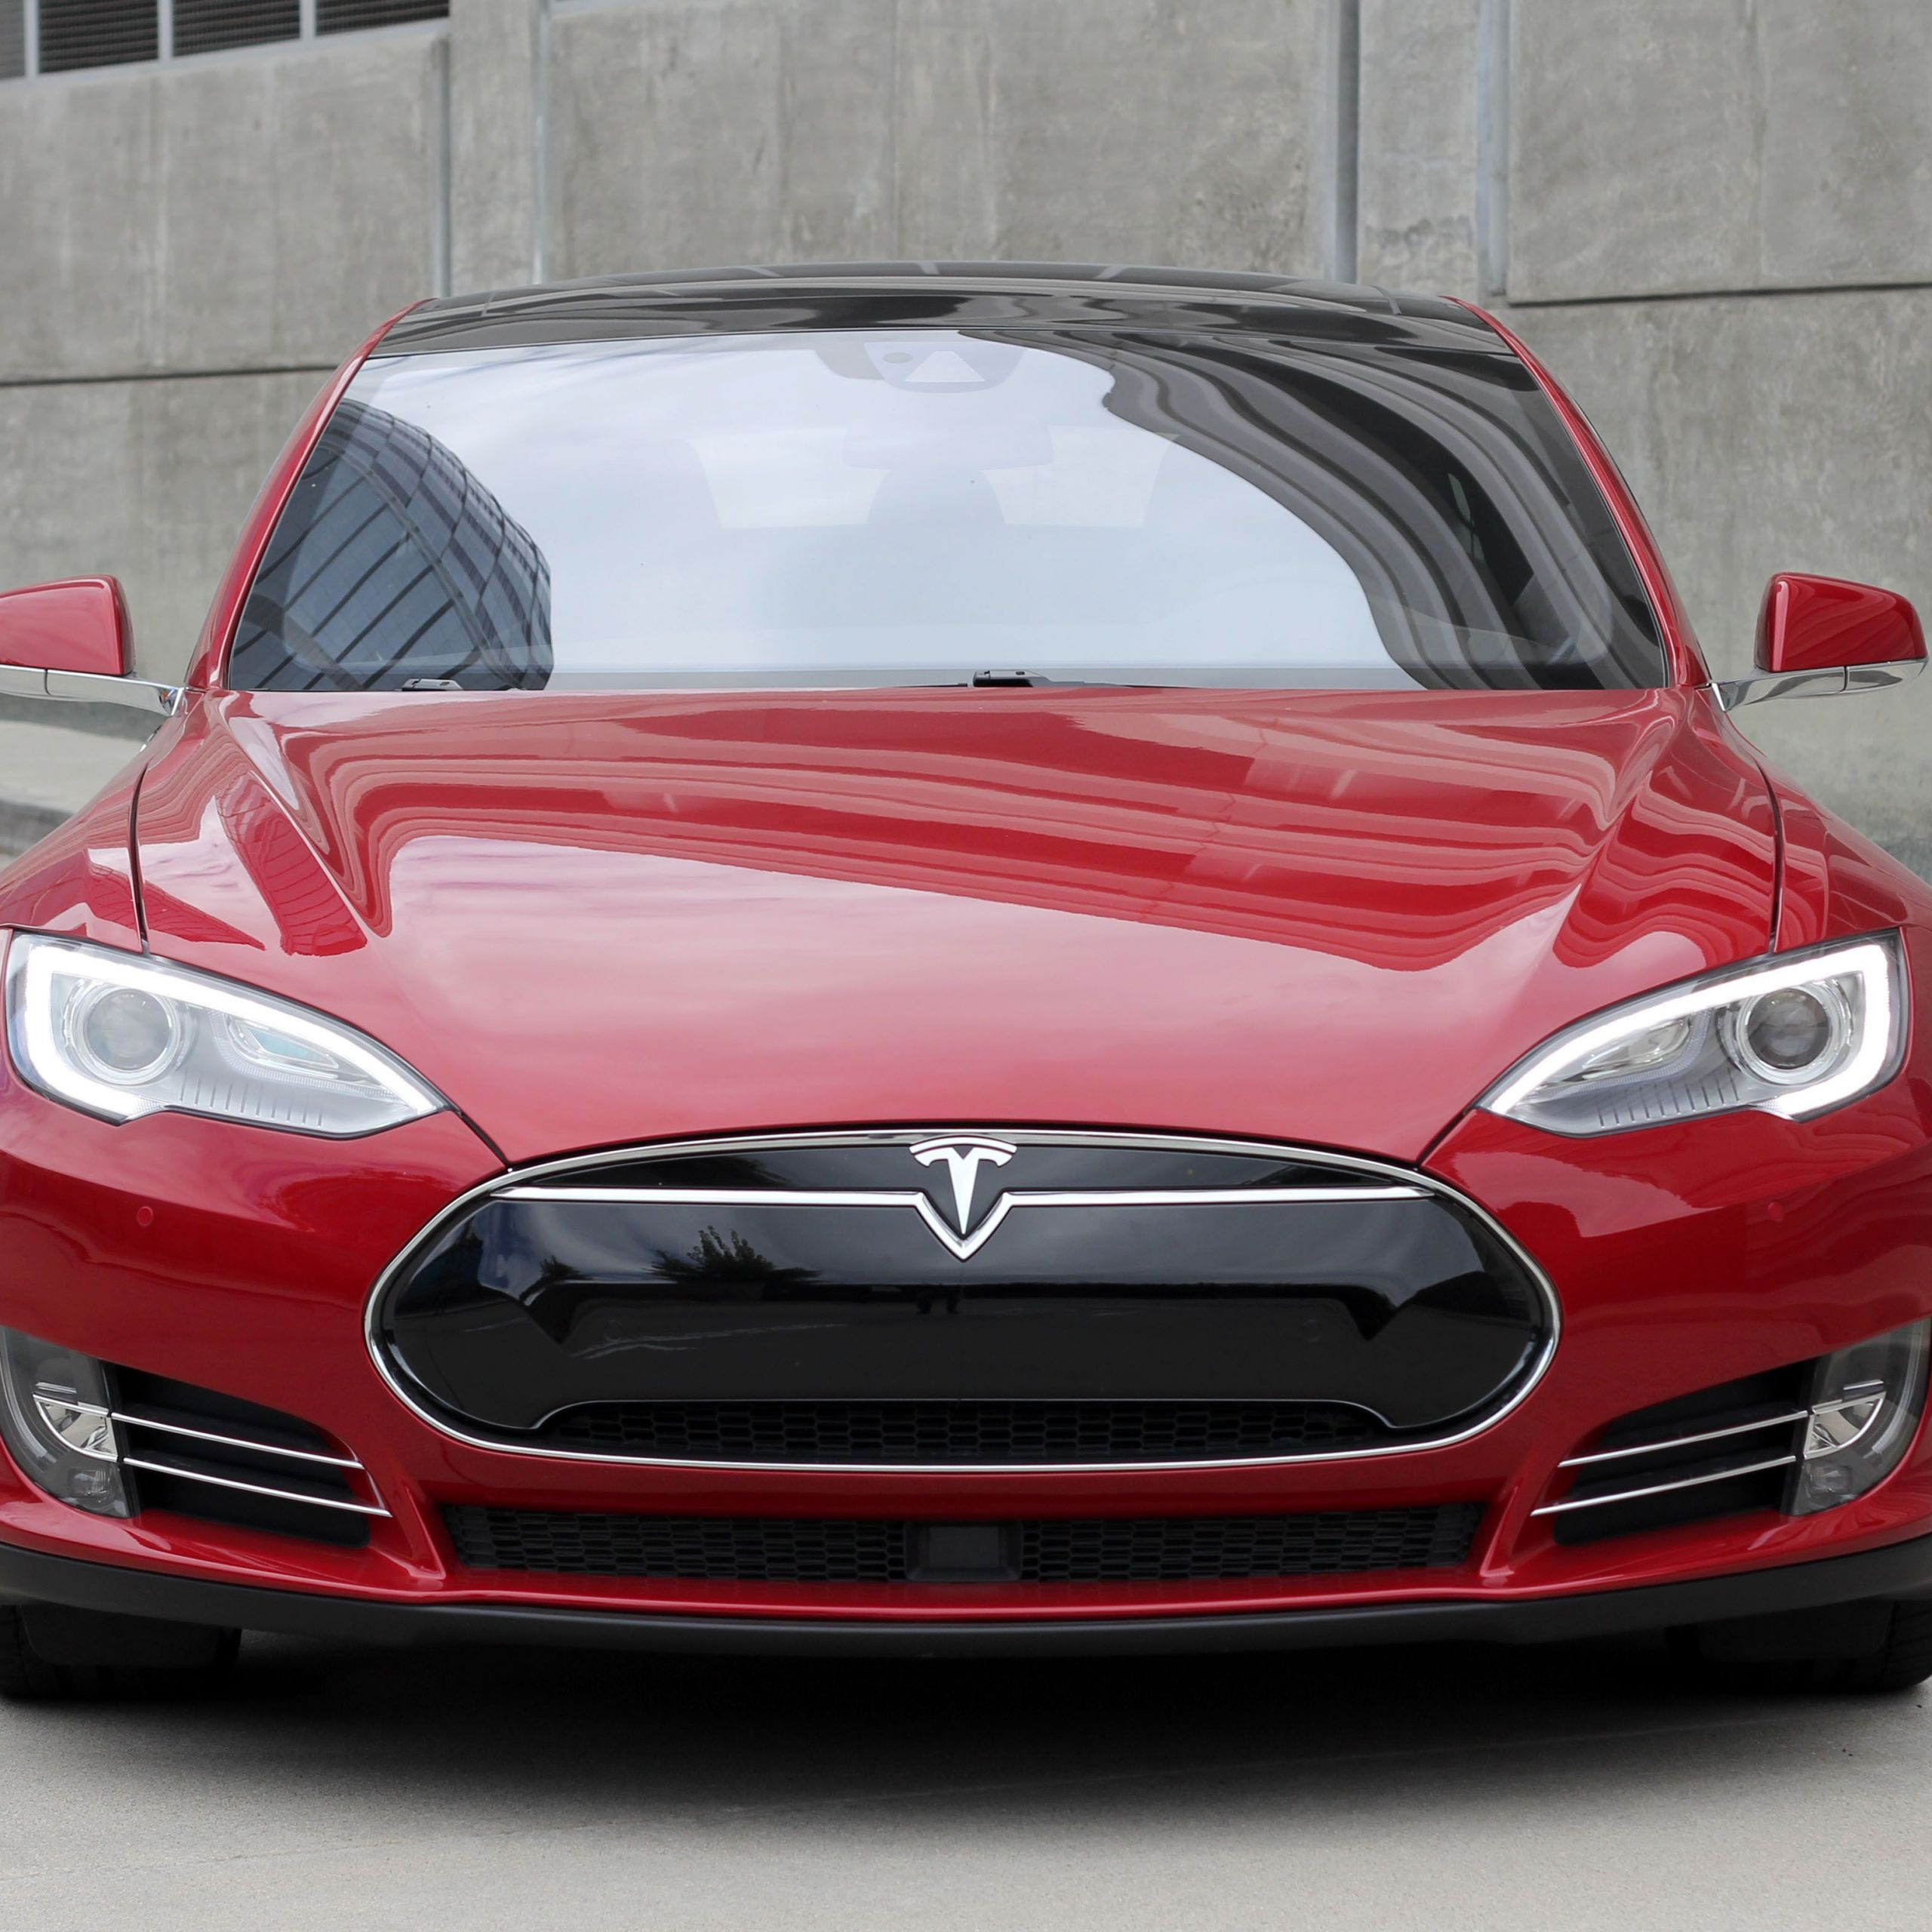 Tesla P90d Elegant Introducing the All New Tesla Model S P90d with Ludicrous